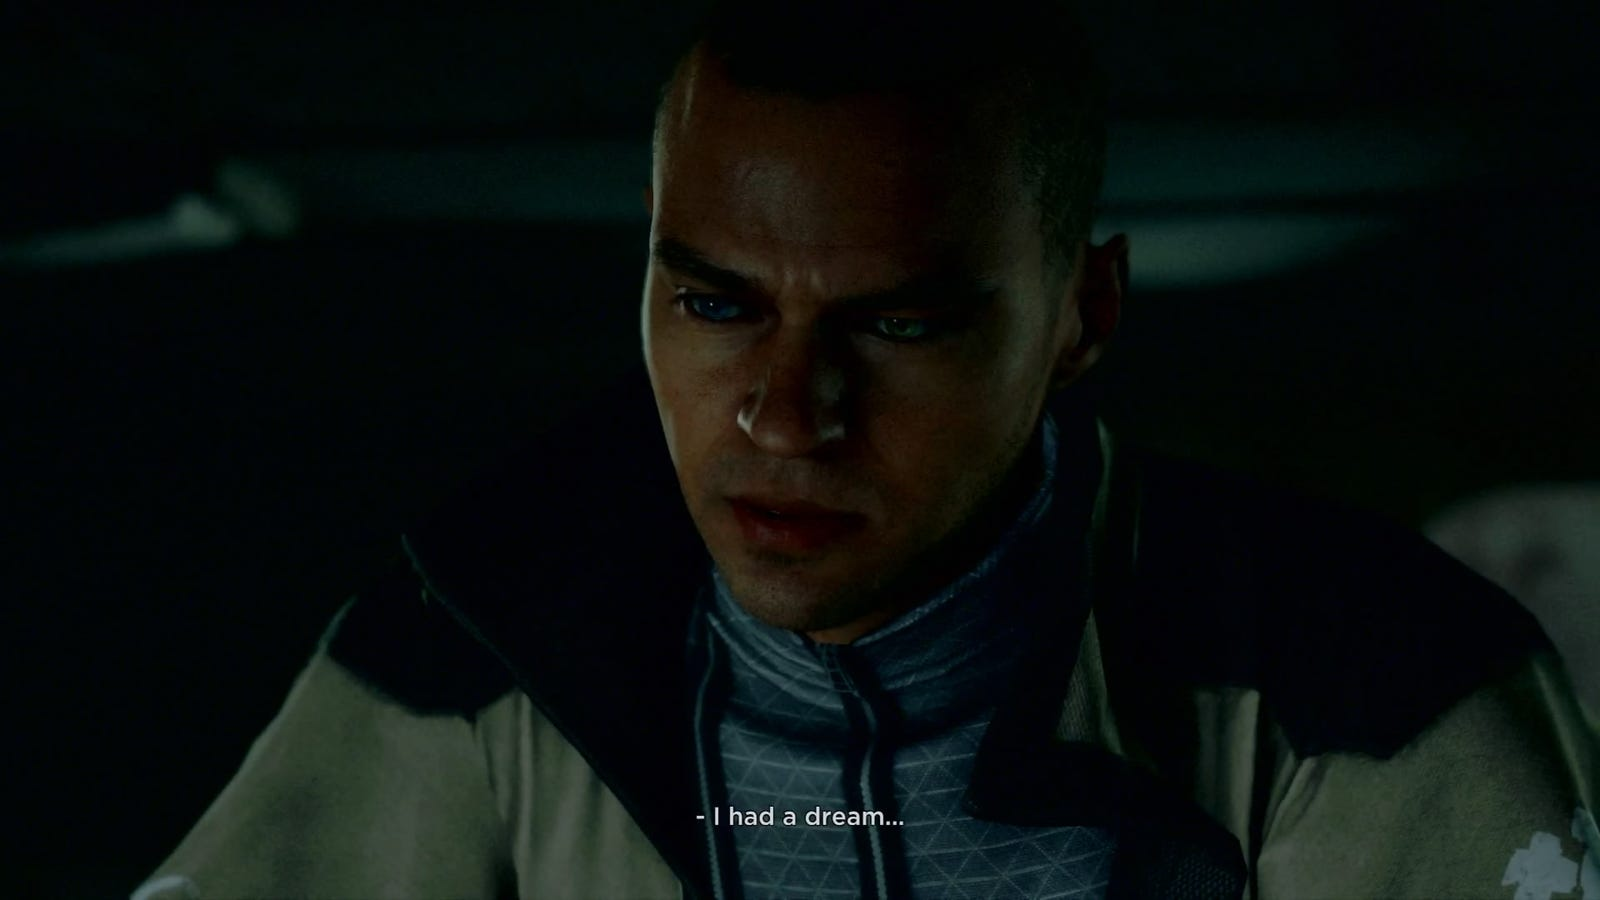 Detroit: Become Human Is an Insult to Black History